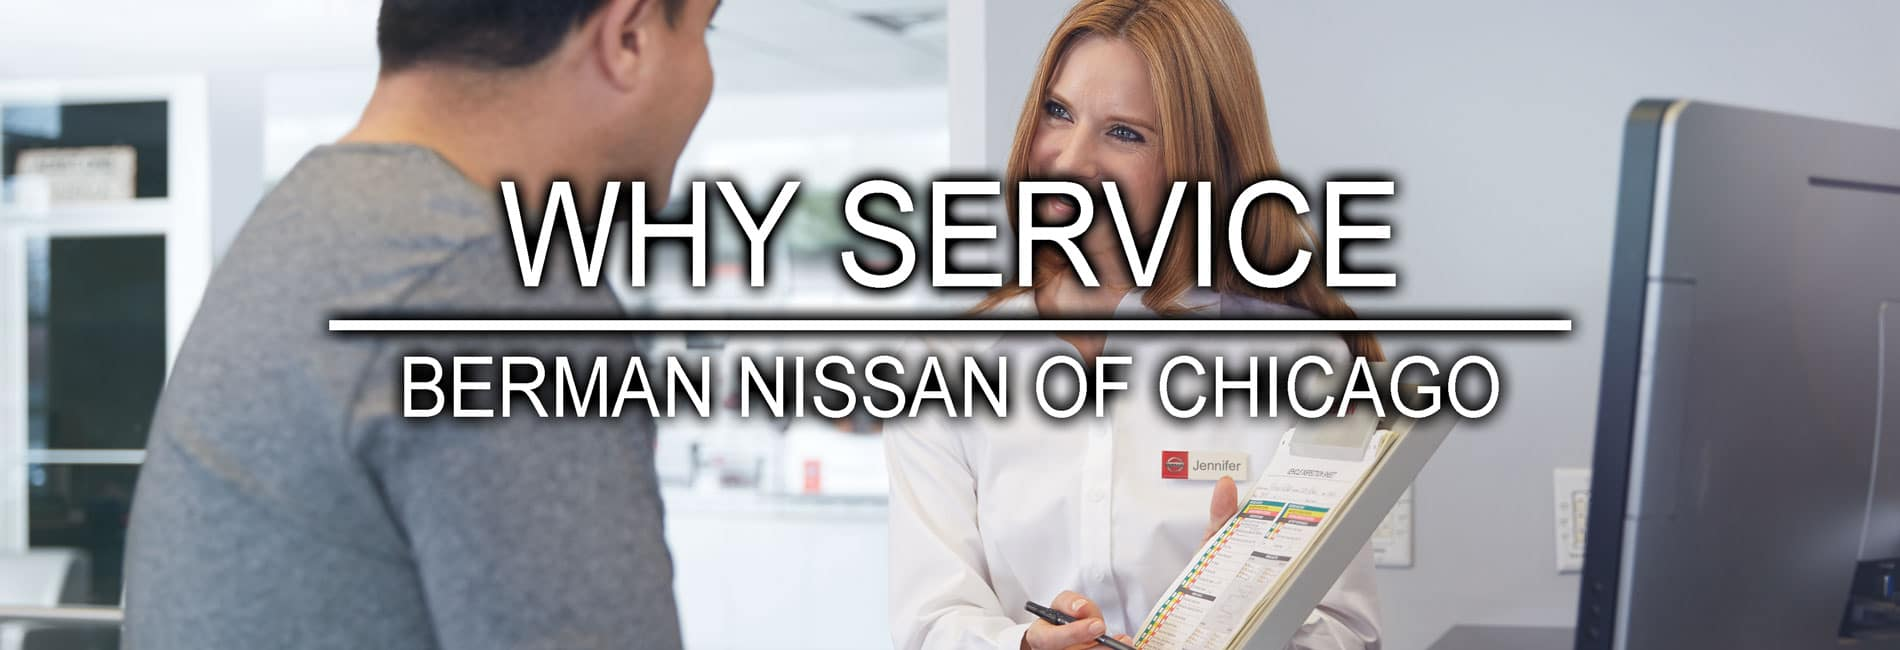 Why Service at Berman Nissan of Chicago